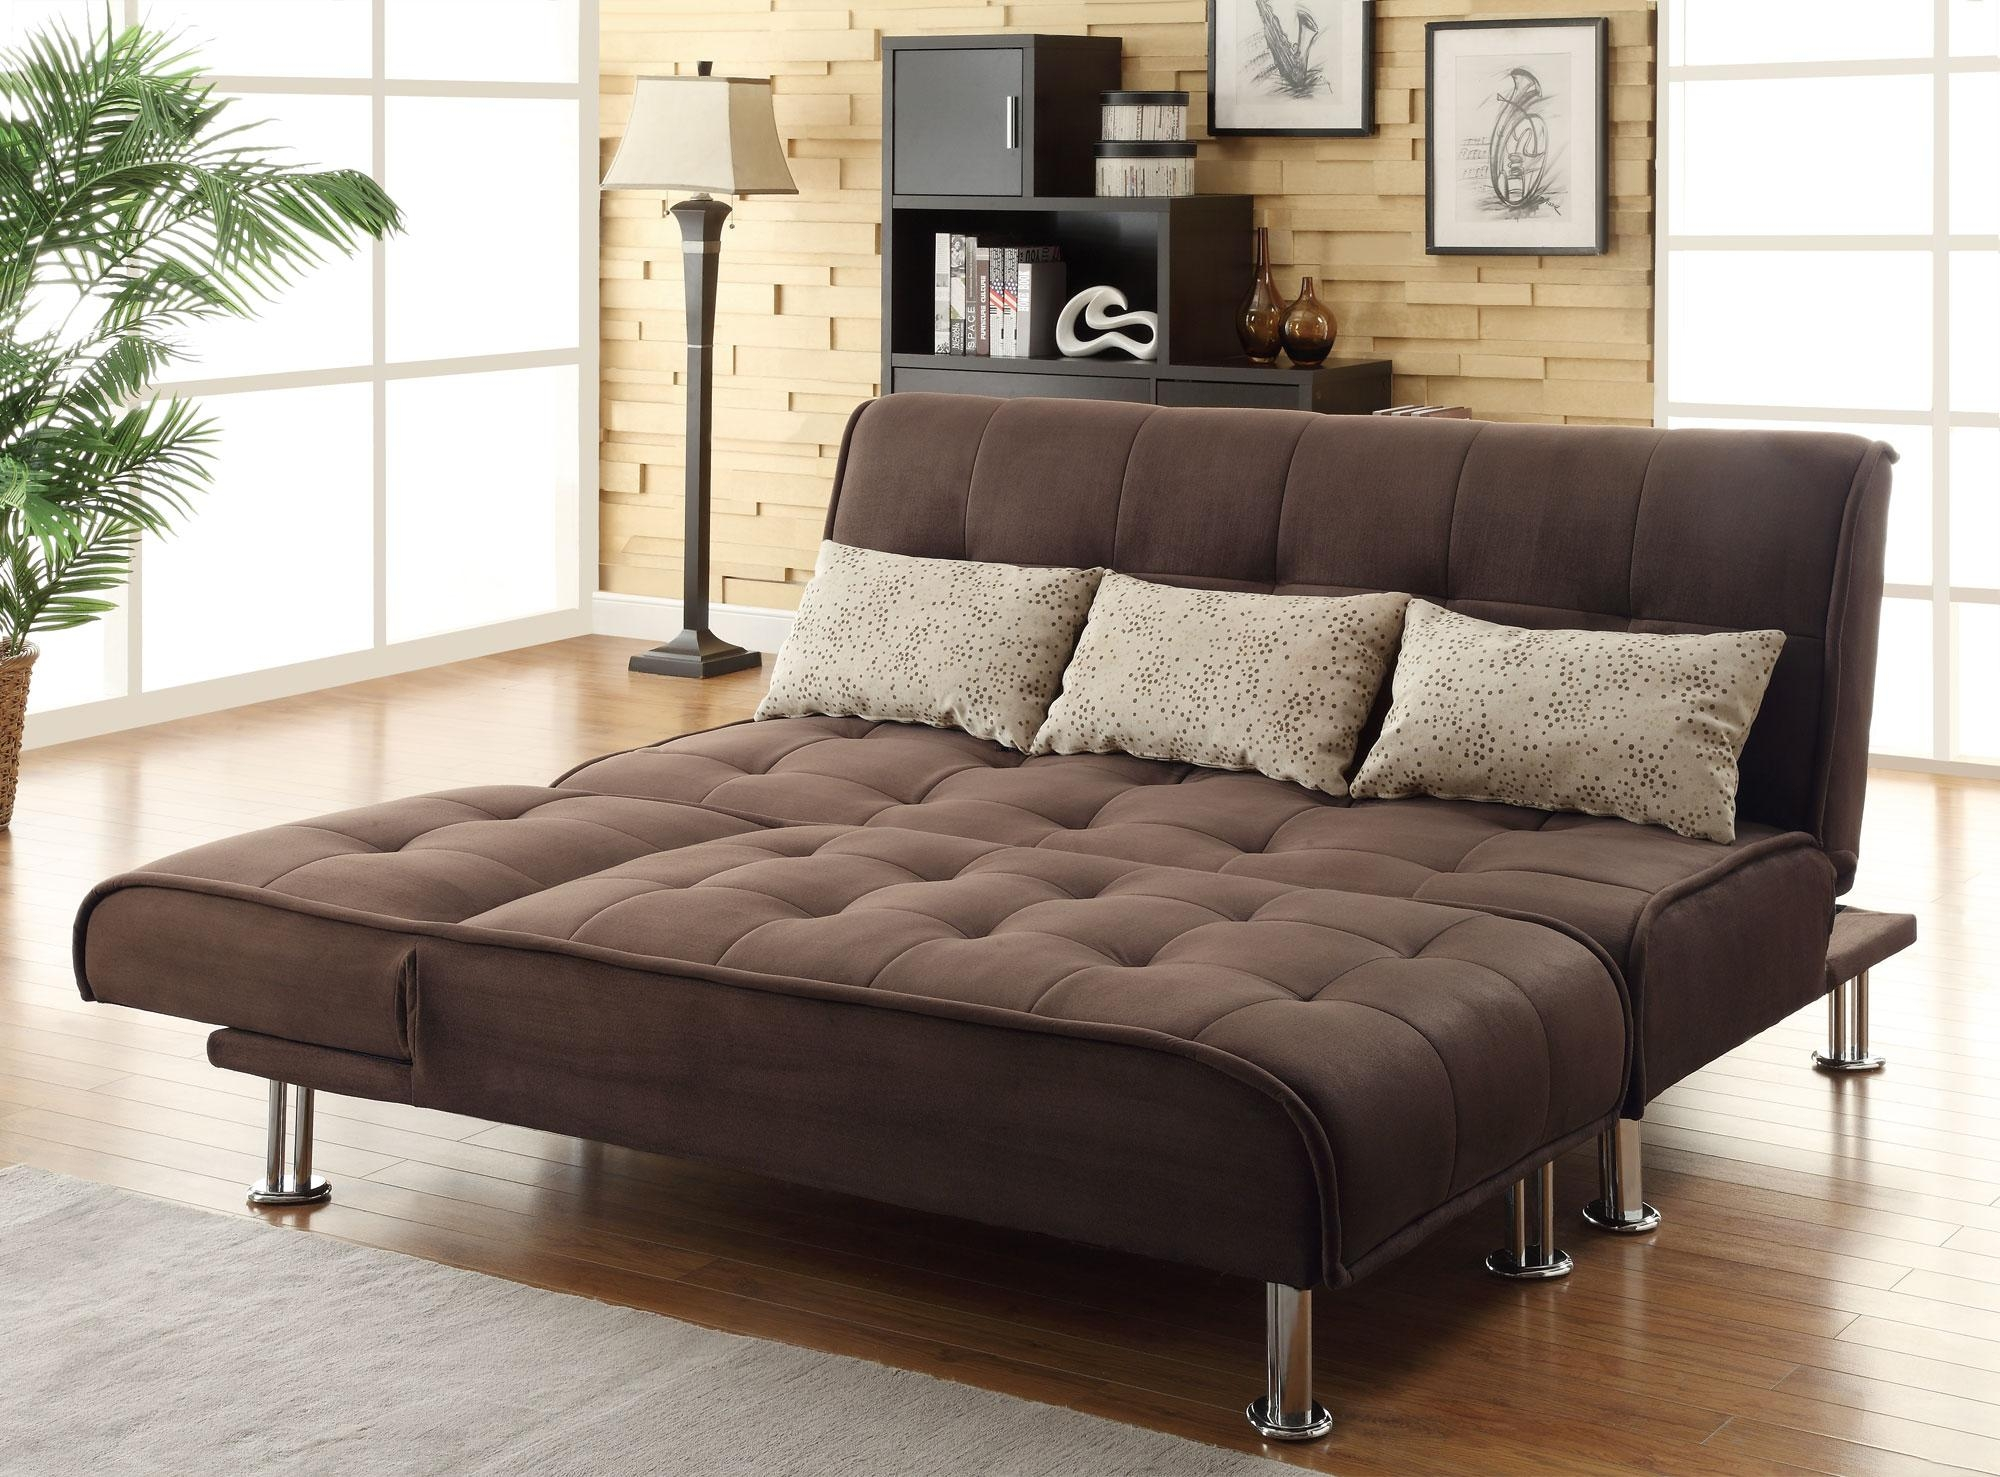 Sofa: Modern Look With A Low Profile Style With Walmart Sofa Bed Pertaining To Sofa Beds With Mattress Support (View 11 of 20)